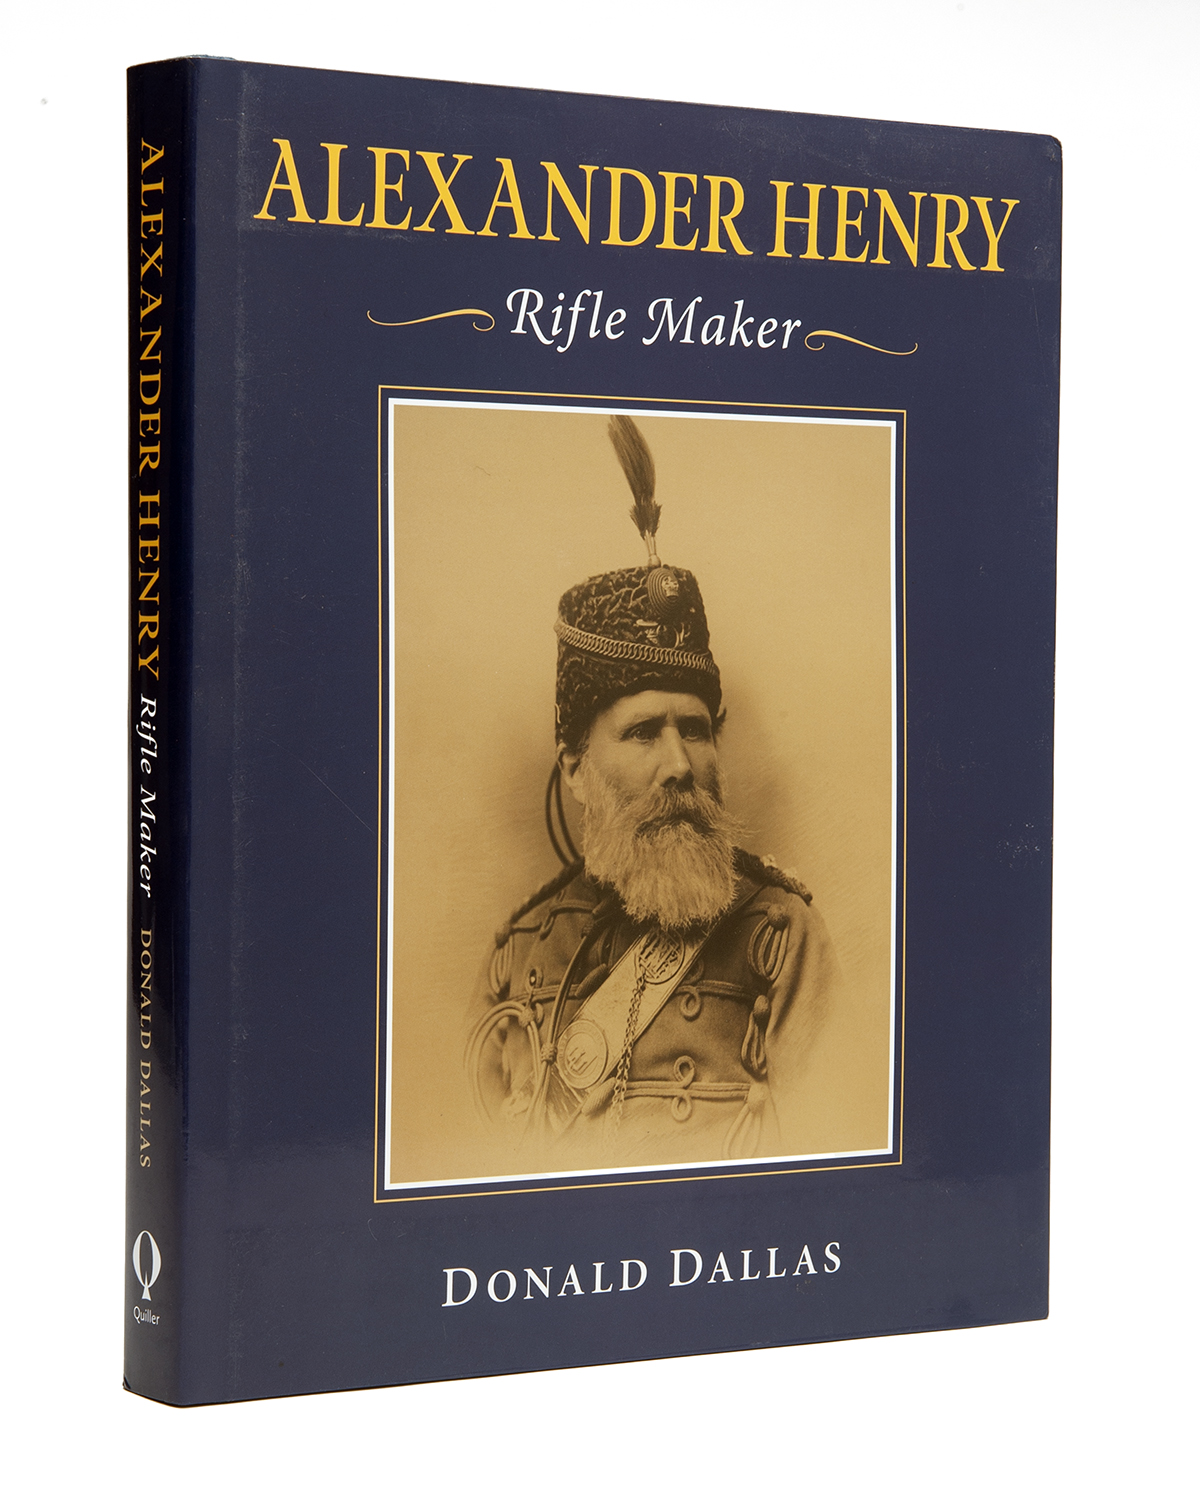 DONALD DALLAS, 'ALEXANDER HENRY - RIFLE MAKER', a signed limited edition no. 650 of 750, forward and